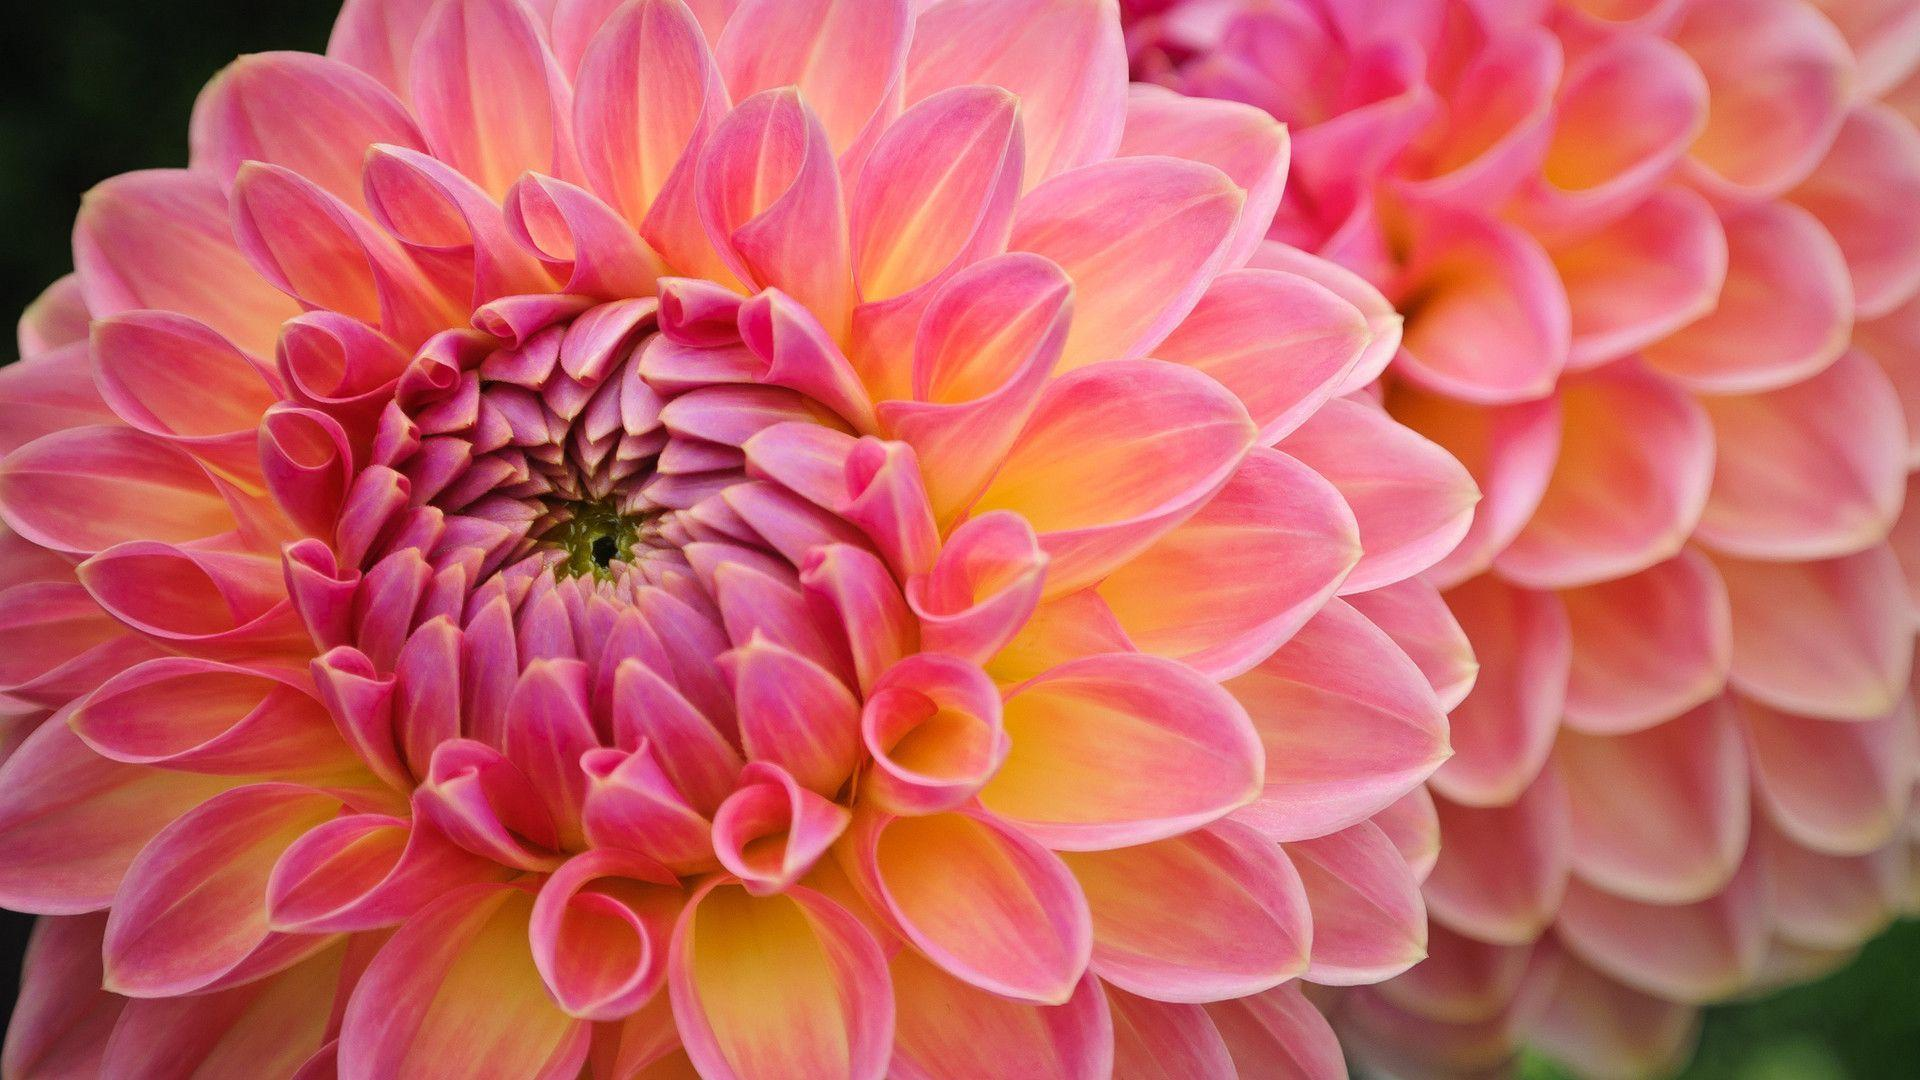 Dahlia Wallpapers Wallpaper Cave HD Wallpapers Download Free Images Wallpaper [1000image.com]